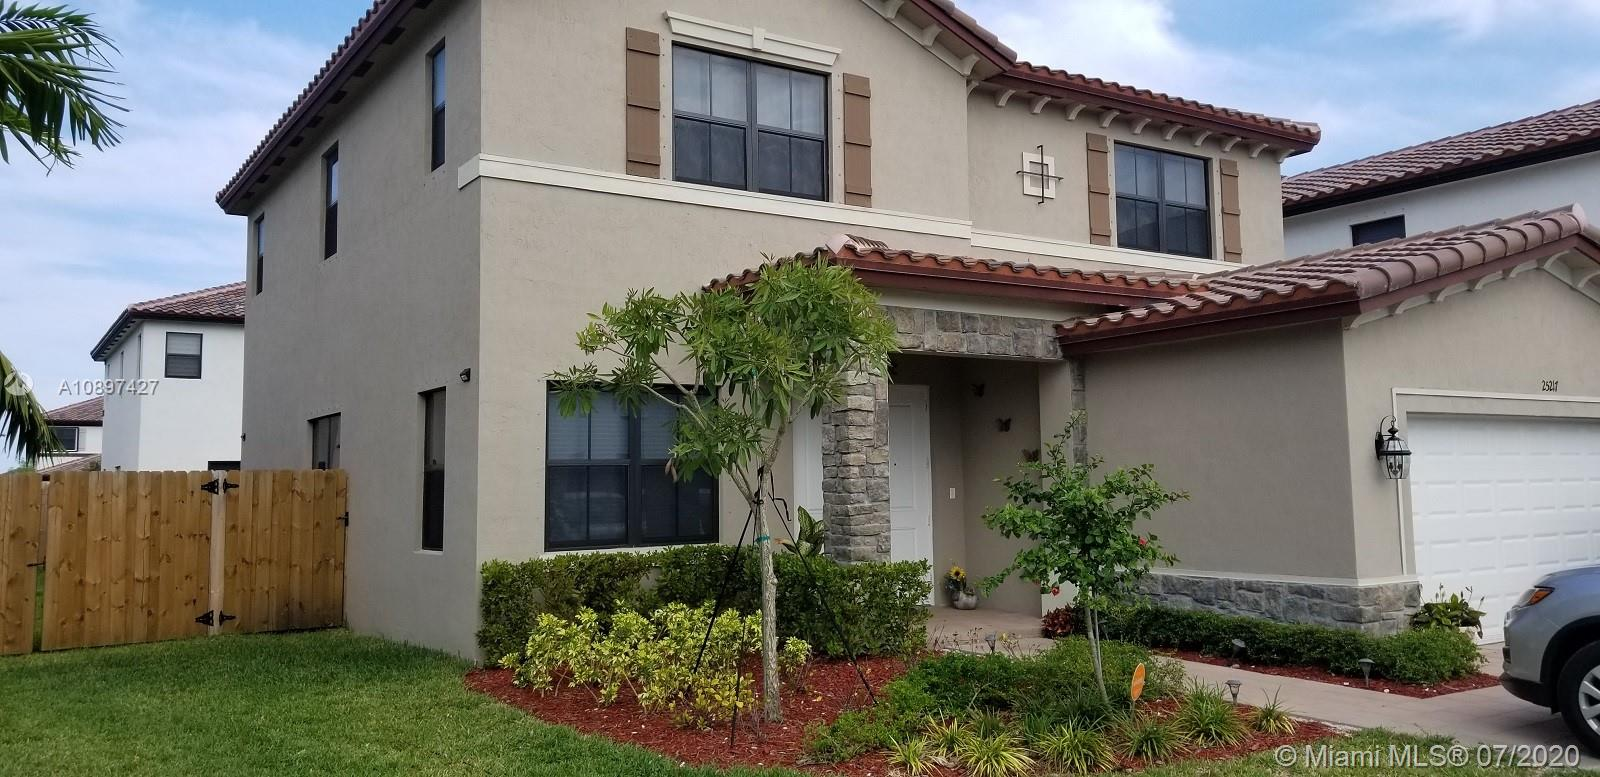 25217 SW 118th Ave Property Photo - Homestead, FL real estate listing